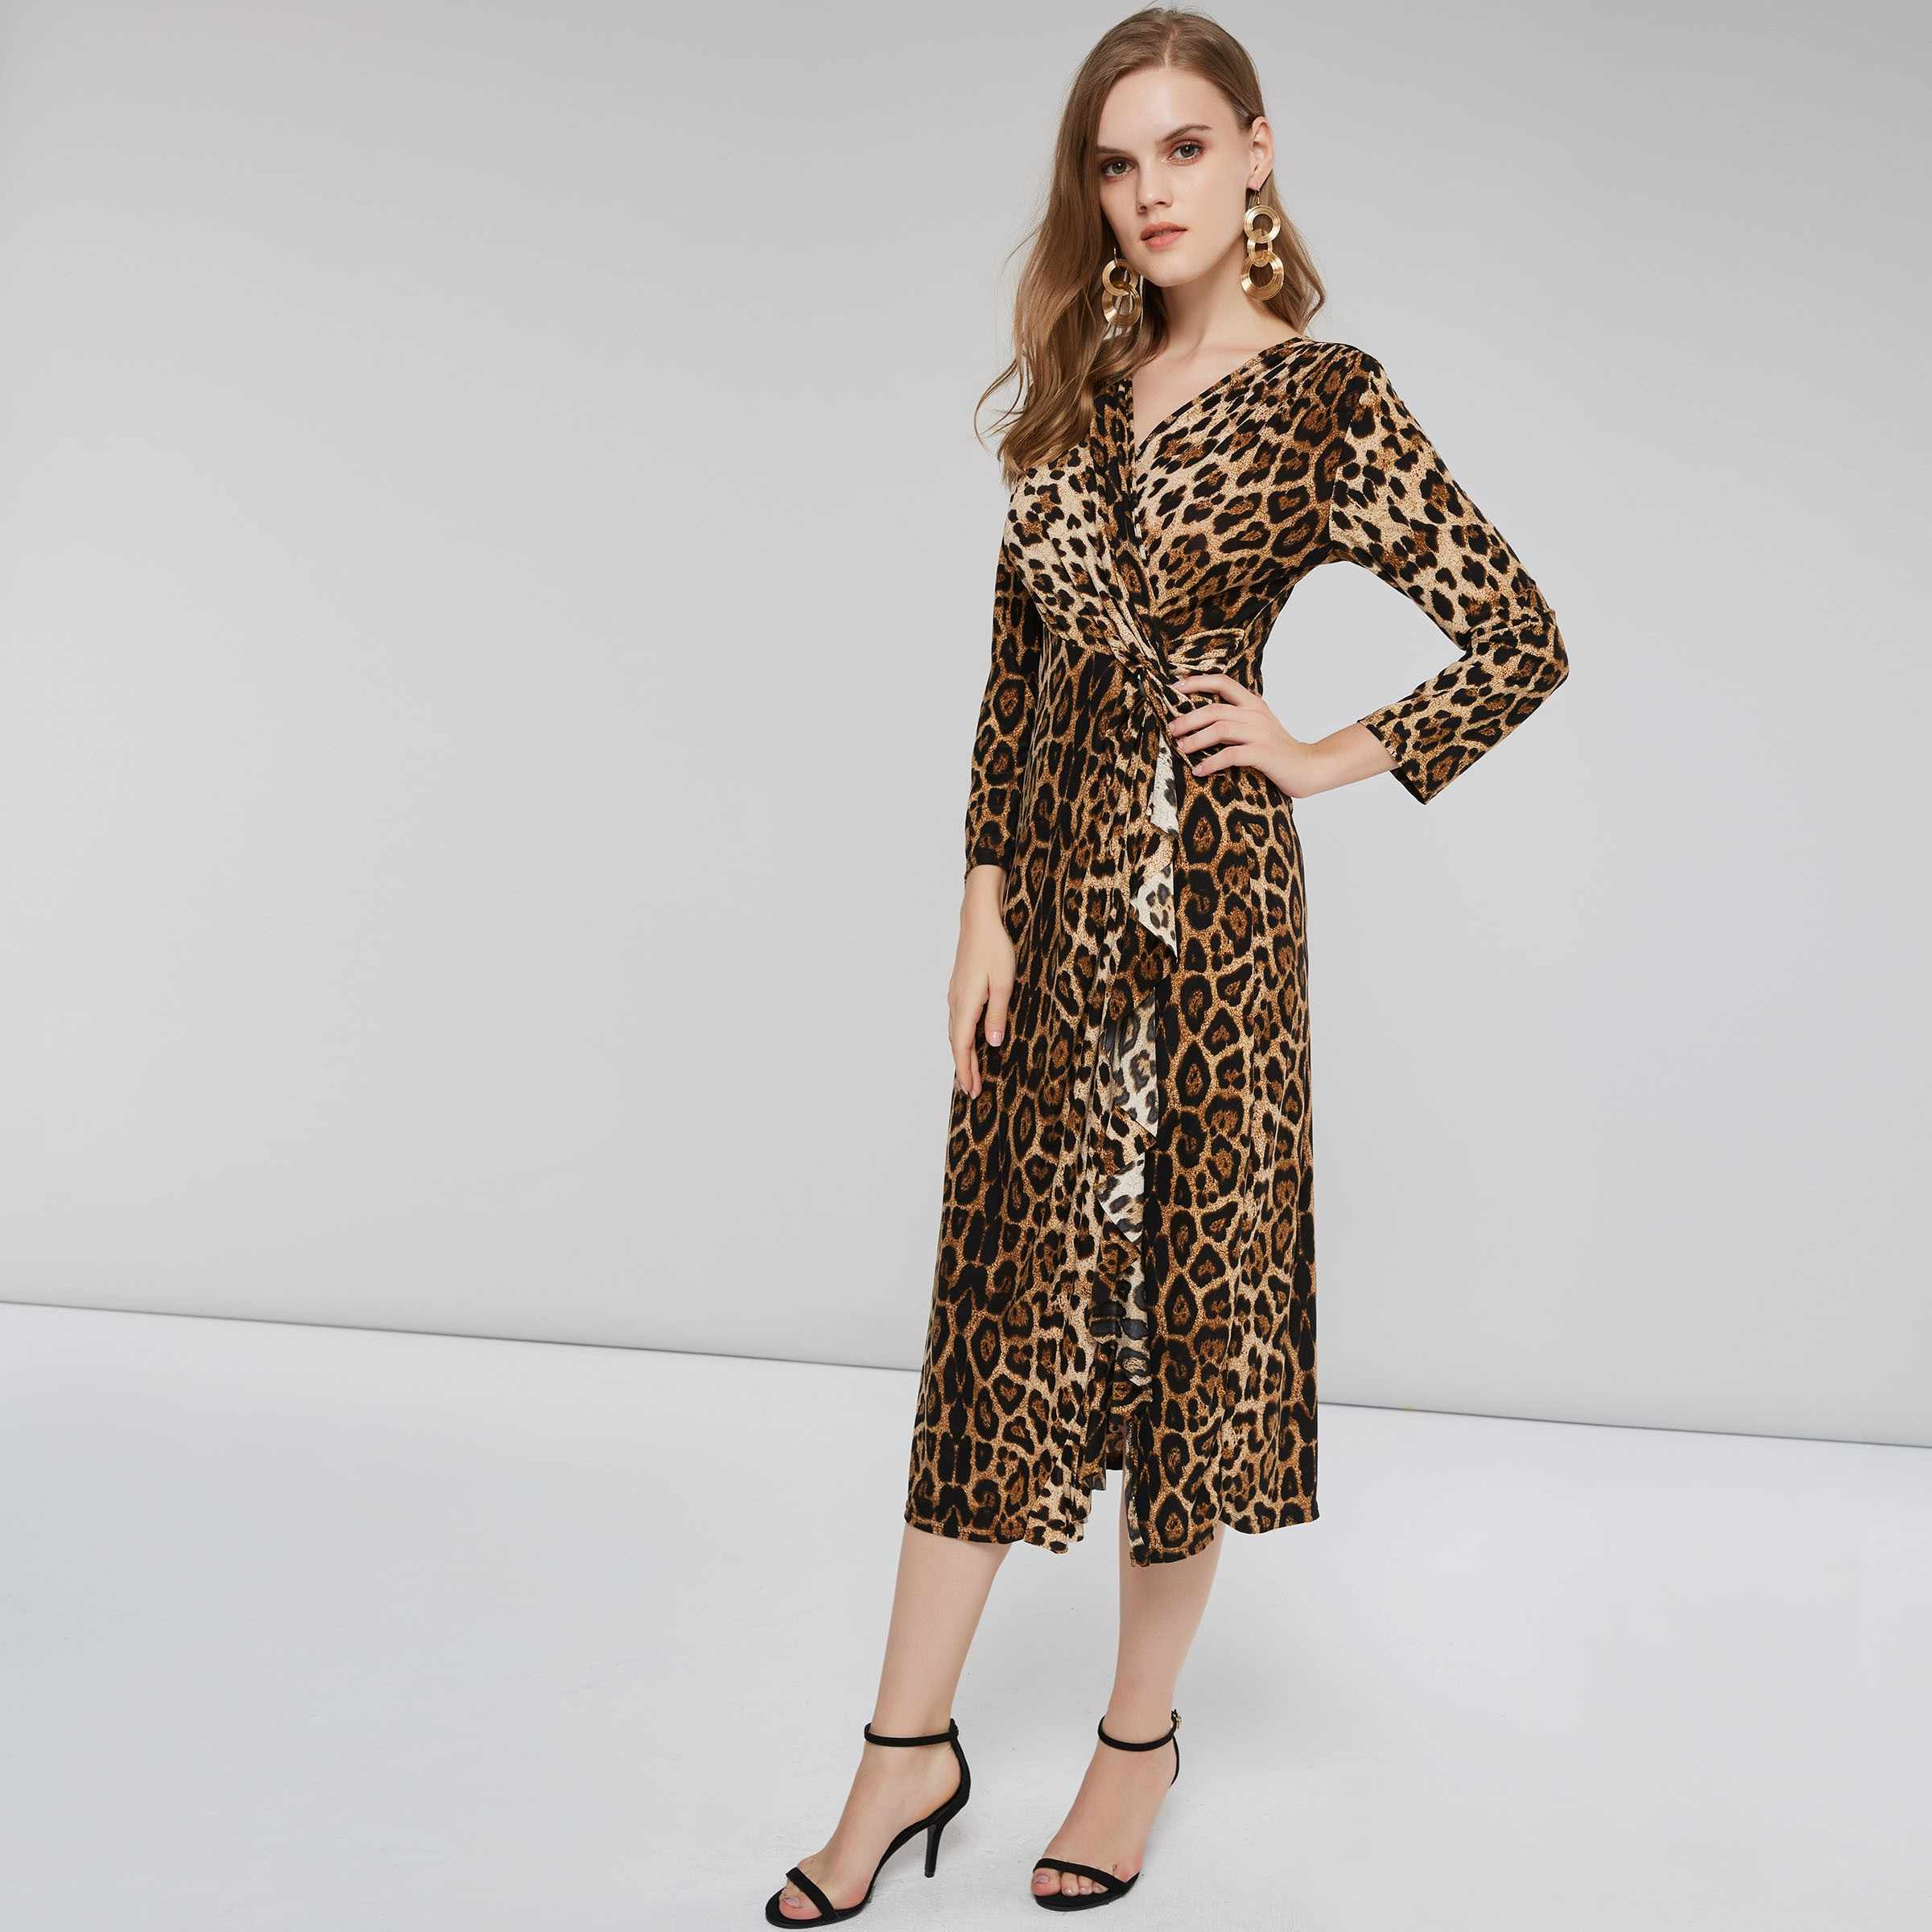 2b93b506cc100 Sisjuly Spring Winter Work High Street Cocktail Party Club Date Night Plus  Size Women Ruffle Dresses Loose Golden Leopard Dress